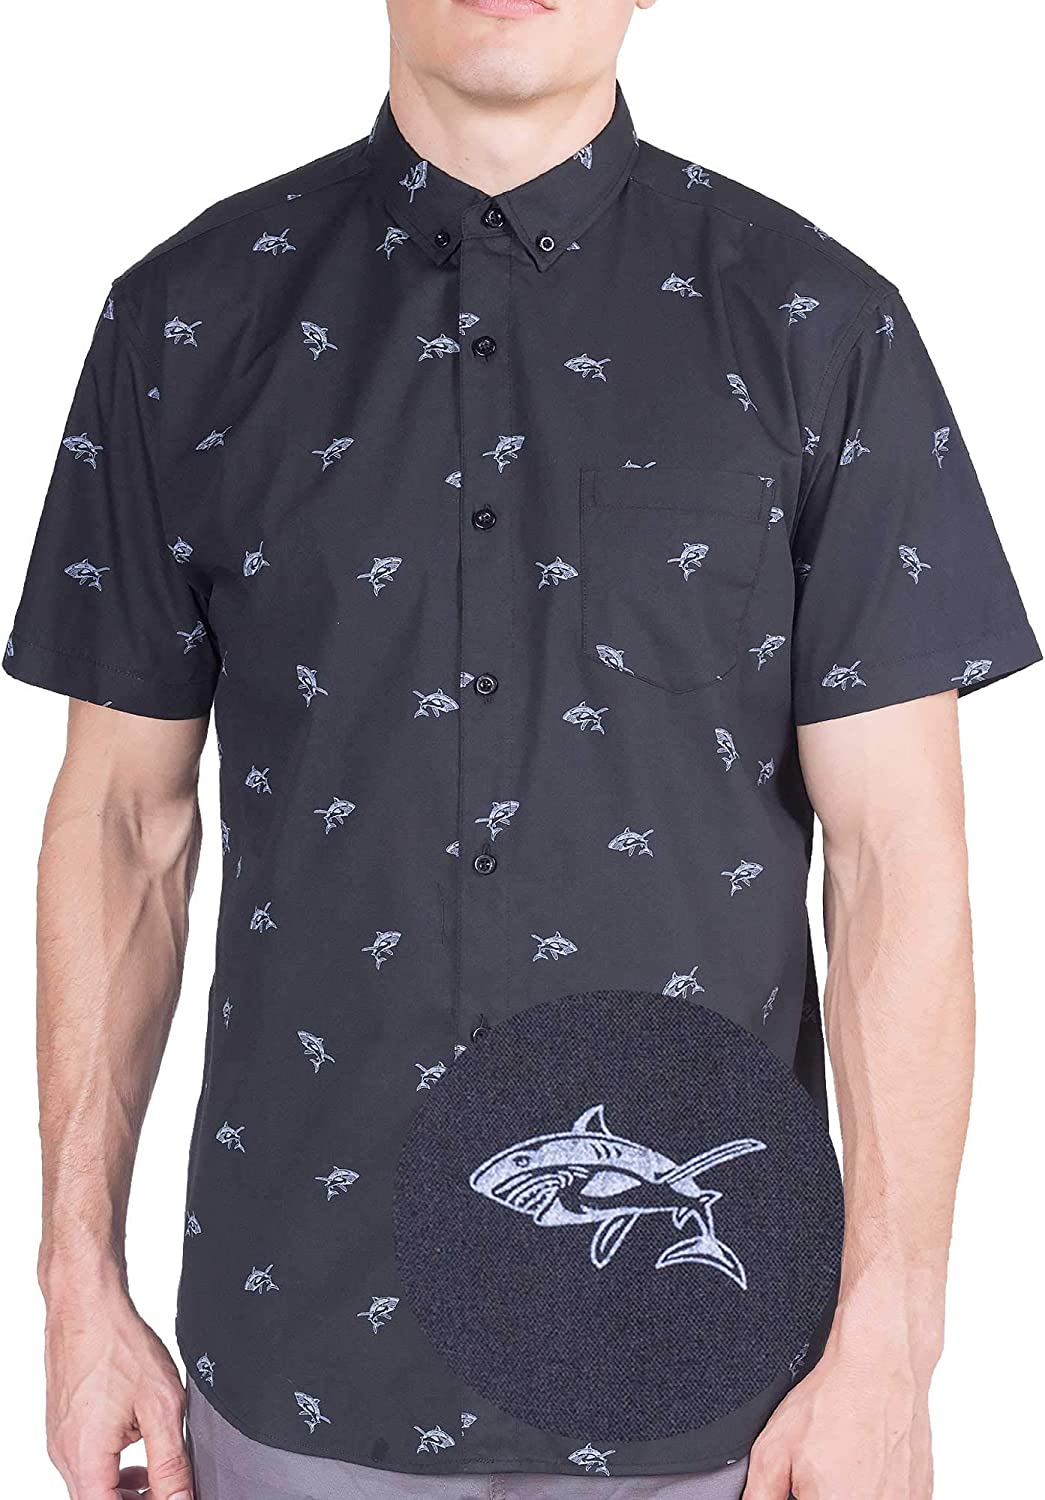 Visive Mens Short Sleeve Button Down Printed Shirts - Over 45 Novelty Prints Sizes S - 4XL